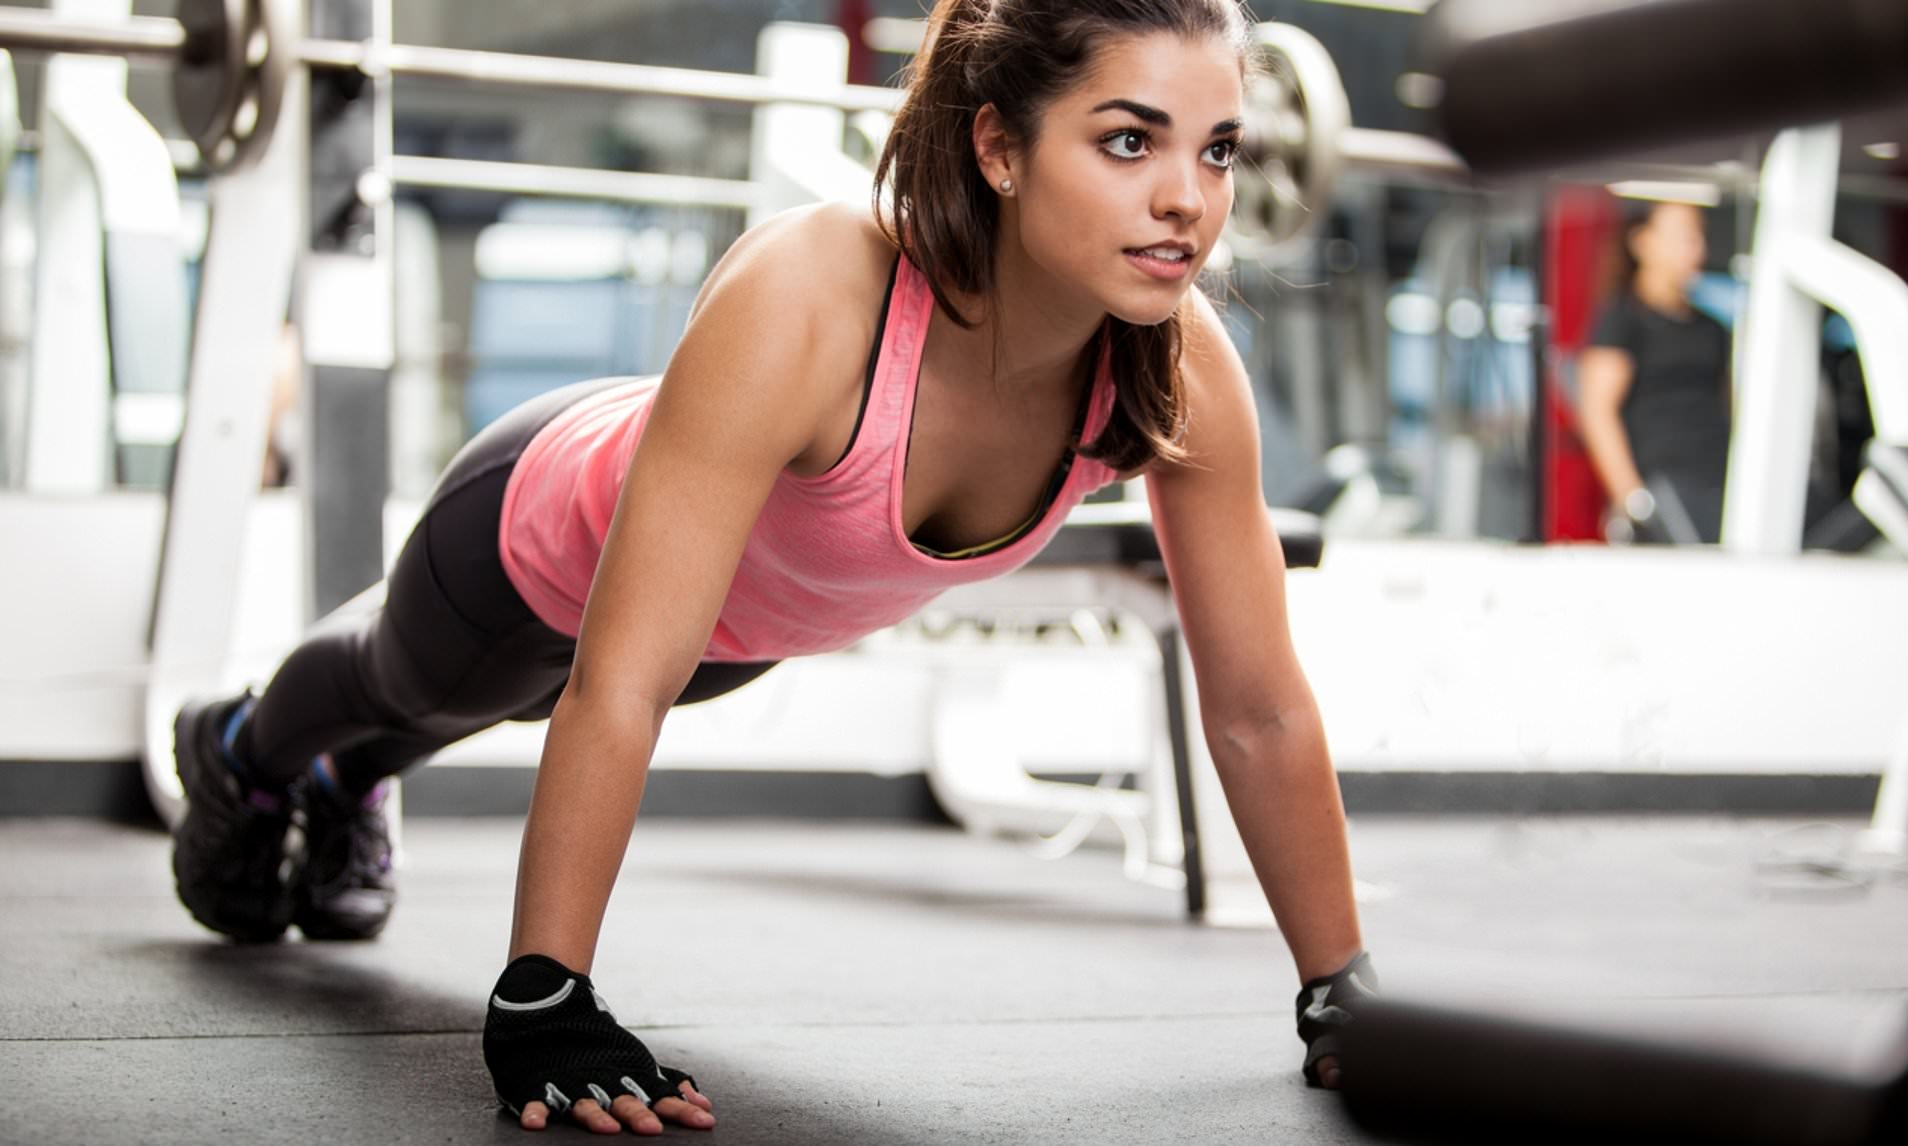 Regular exercise can reduce risk of developing anxiety by 60%: Study